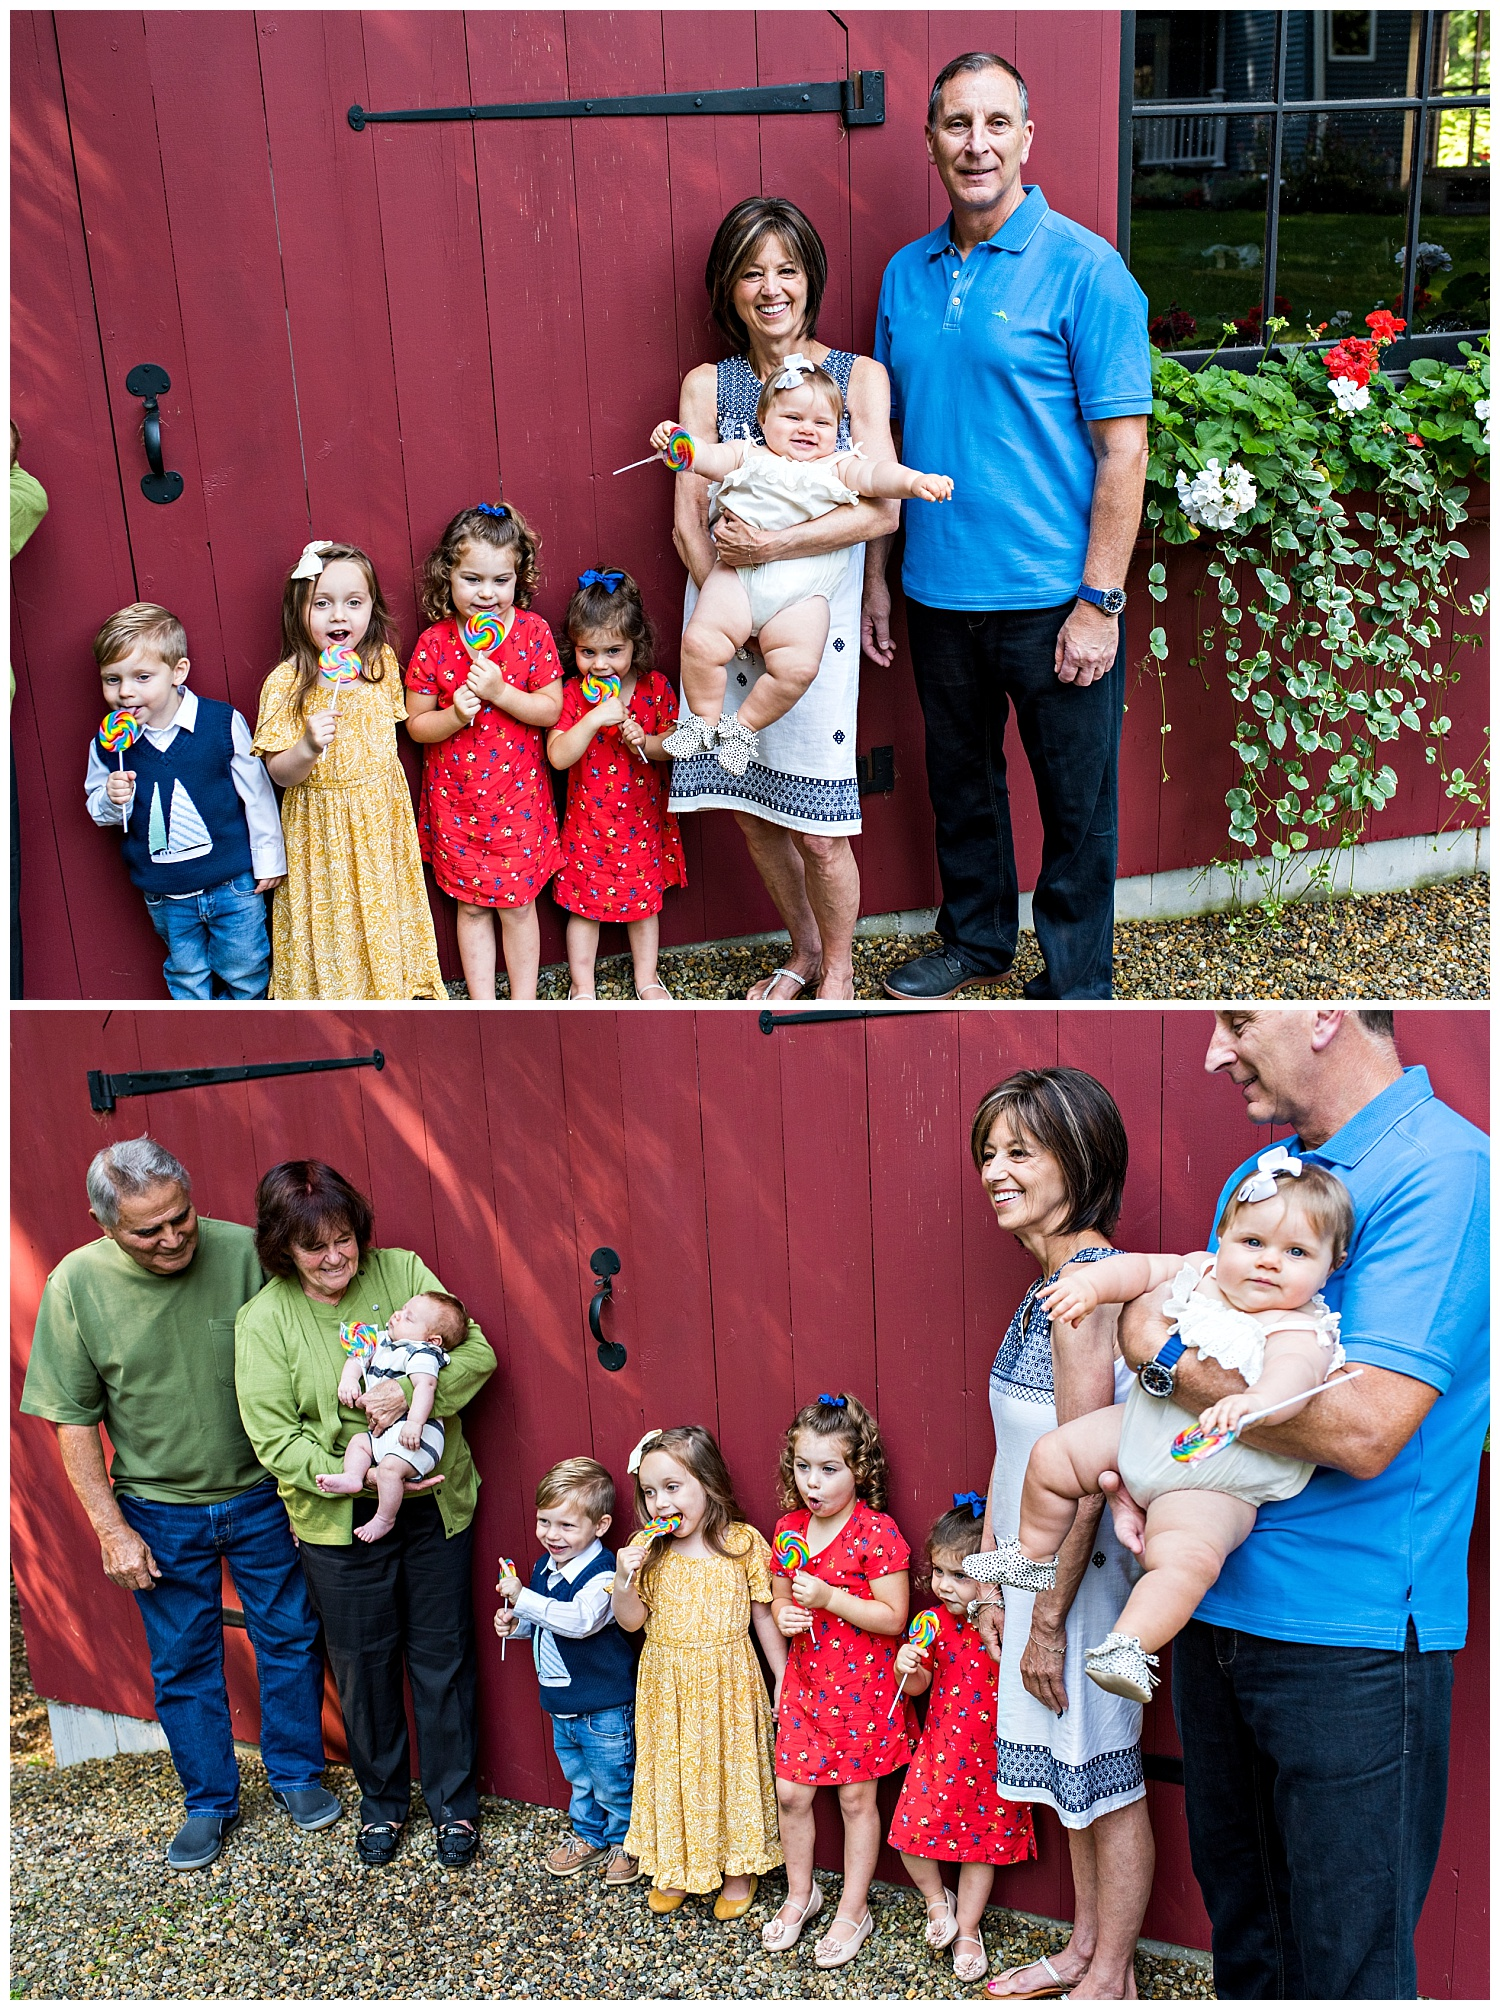 grandparents with grandchildren family photography session connecticut. darien, ct family photography